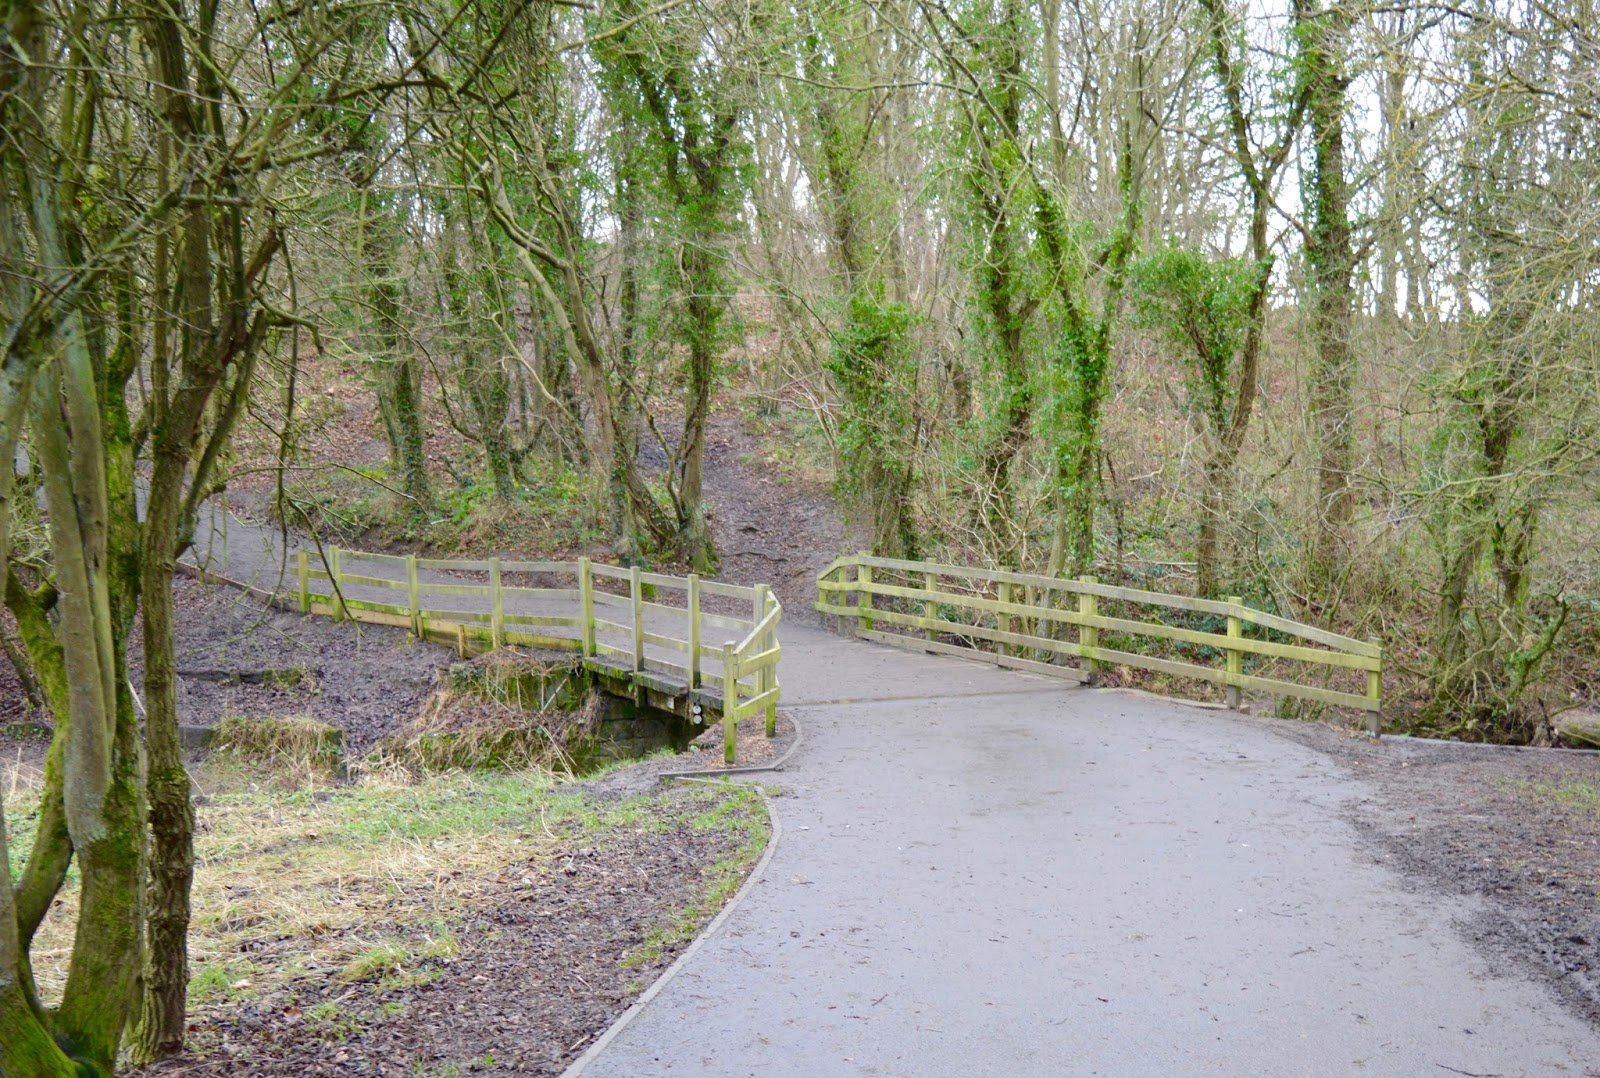 Our Visit to Plessey Woods - A FREE day out in Northumberland. It was very muddy and the perfect chance for Harry to put his GORE-TEX shoes through their paces - foot bridge over the river Blyth